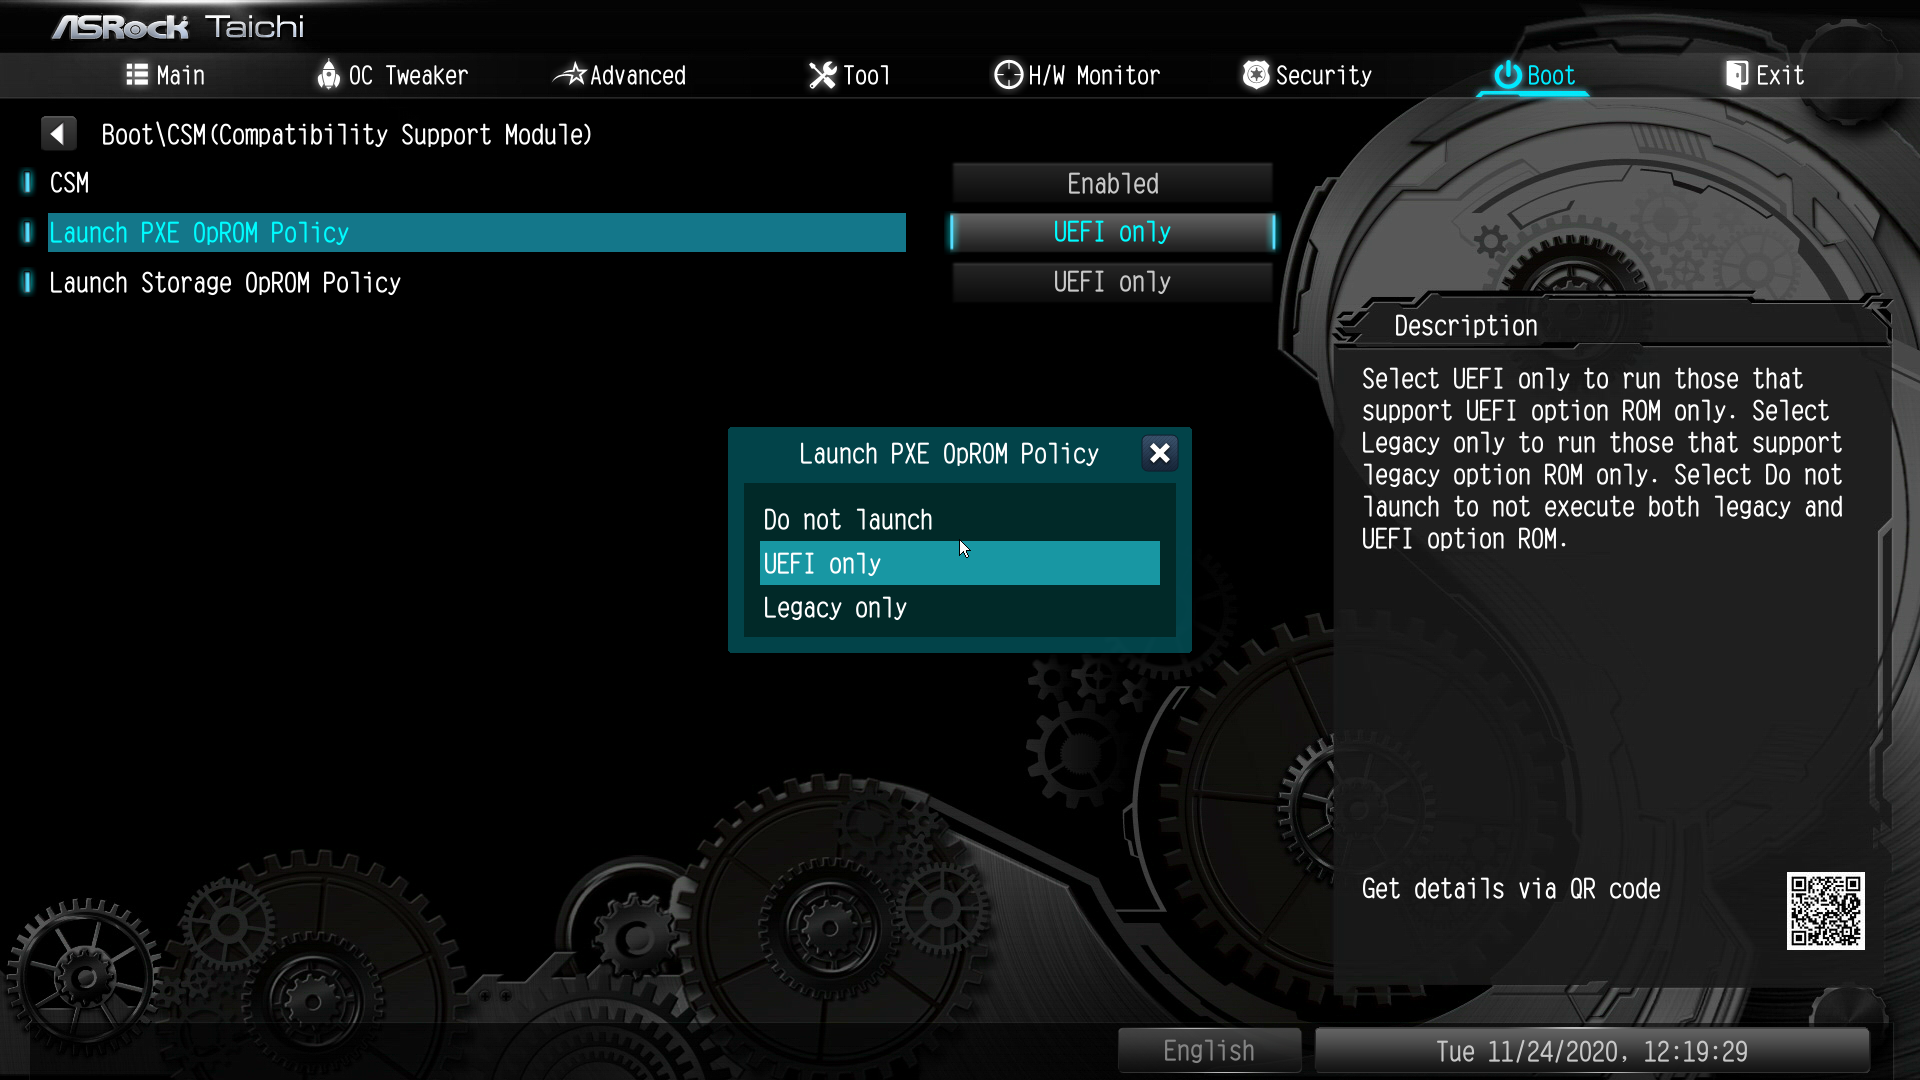 「Boot」→「CSM(Compatibility Support Module)」→「Launch PXE OpROM Policy」を「UEFI only」にする